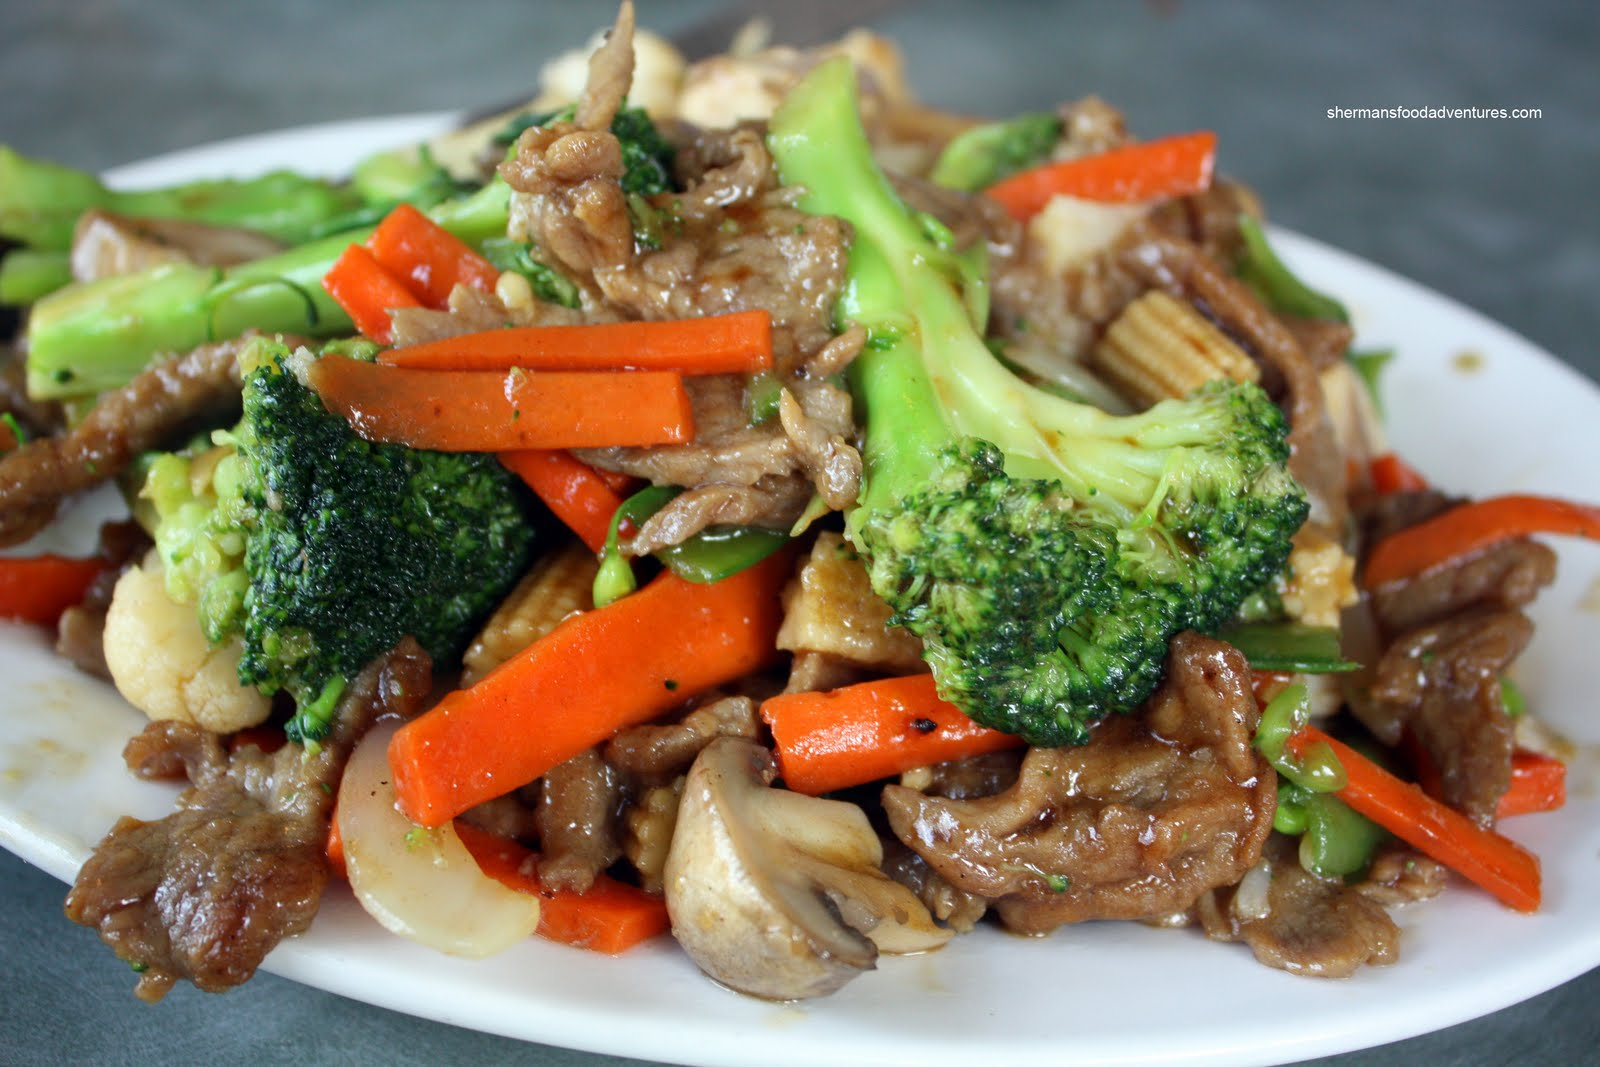 LocationChinese Beef Chop Suey